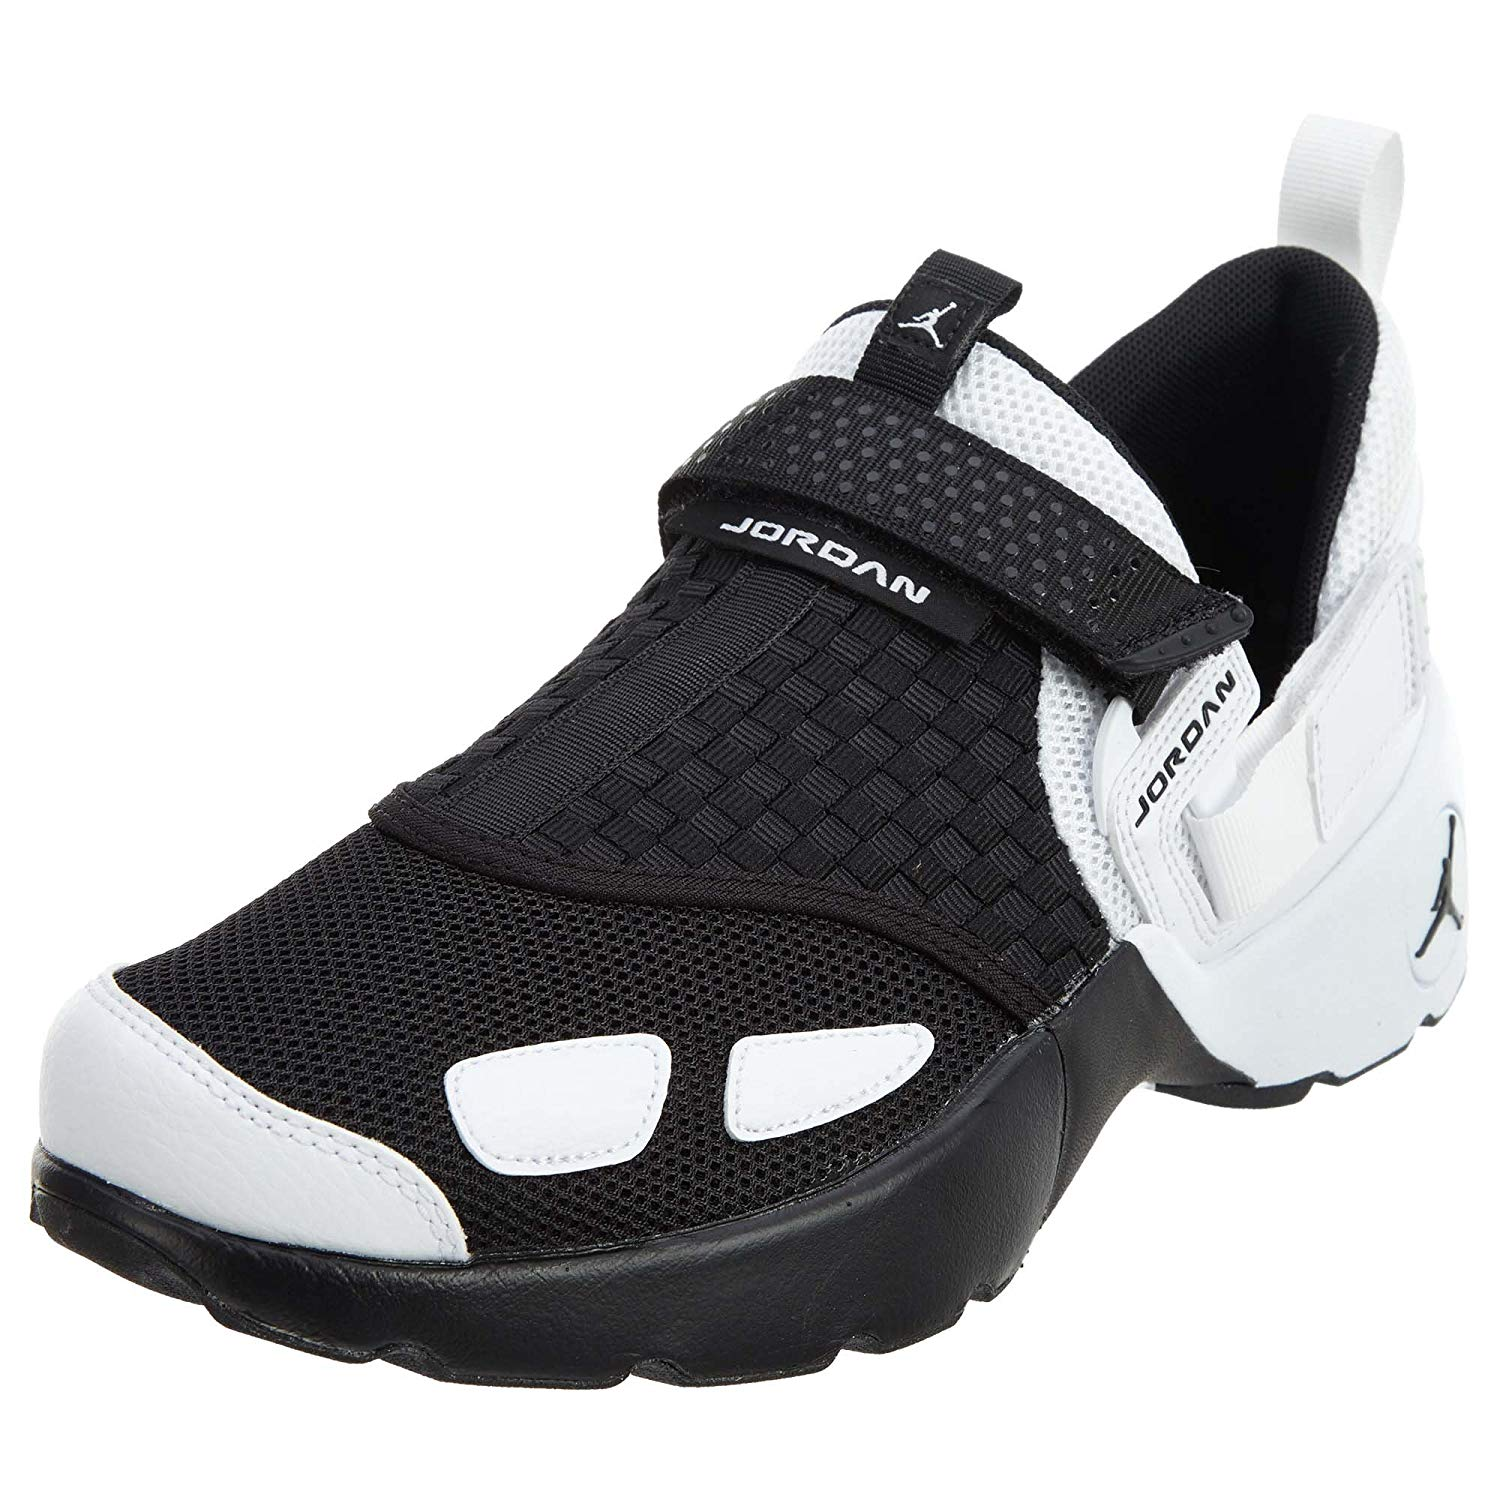 san francisco 23cc1 802ab Get Quotations · Jordan Trunner Lx Mens Style  897992-010 Size  13 M US